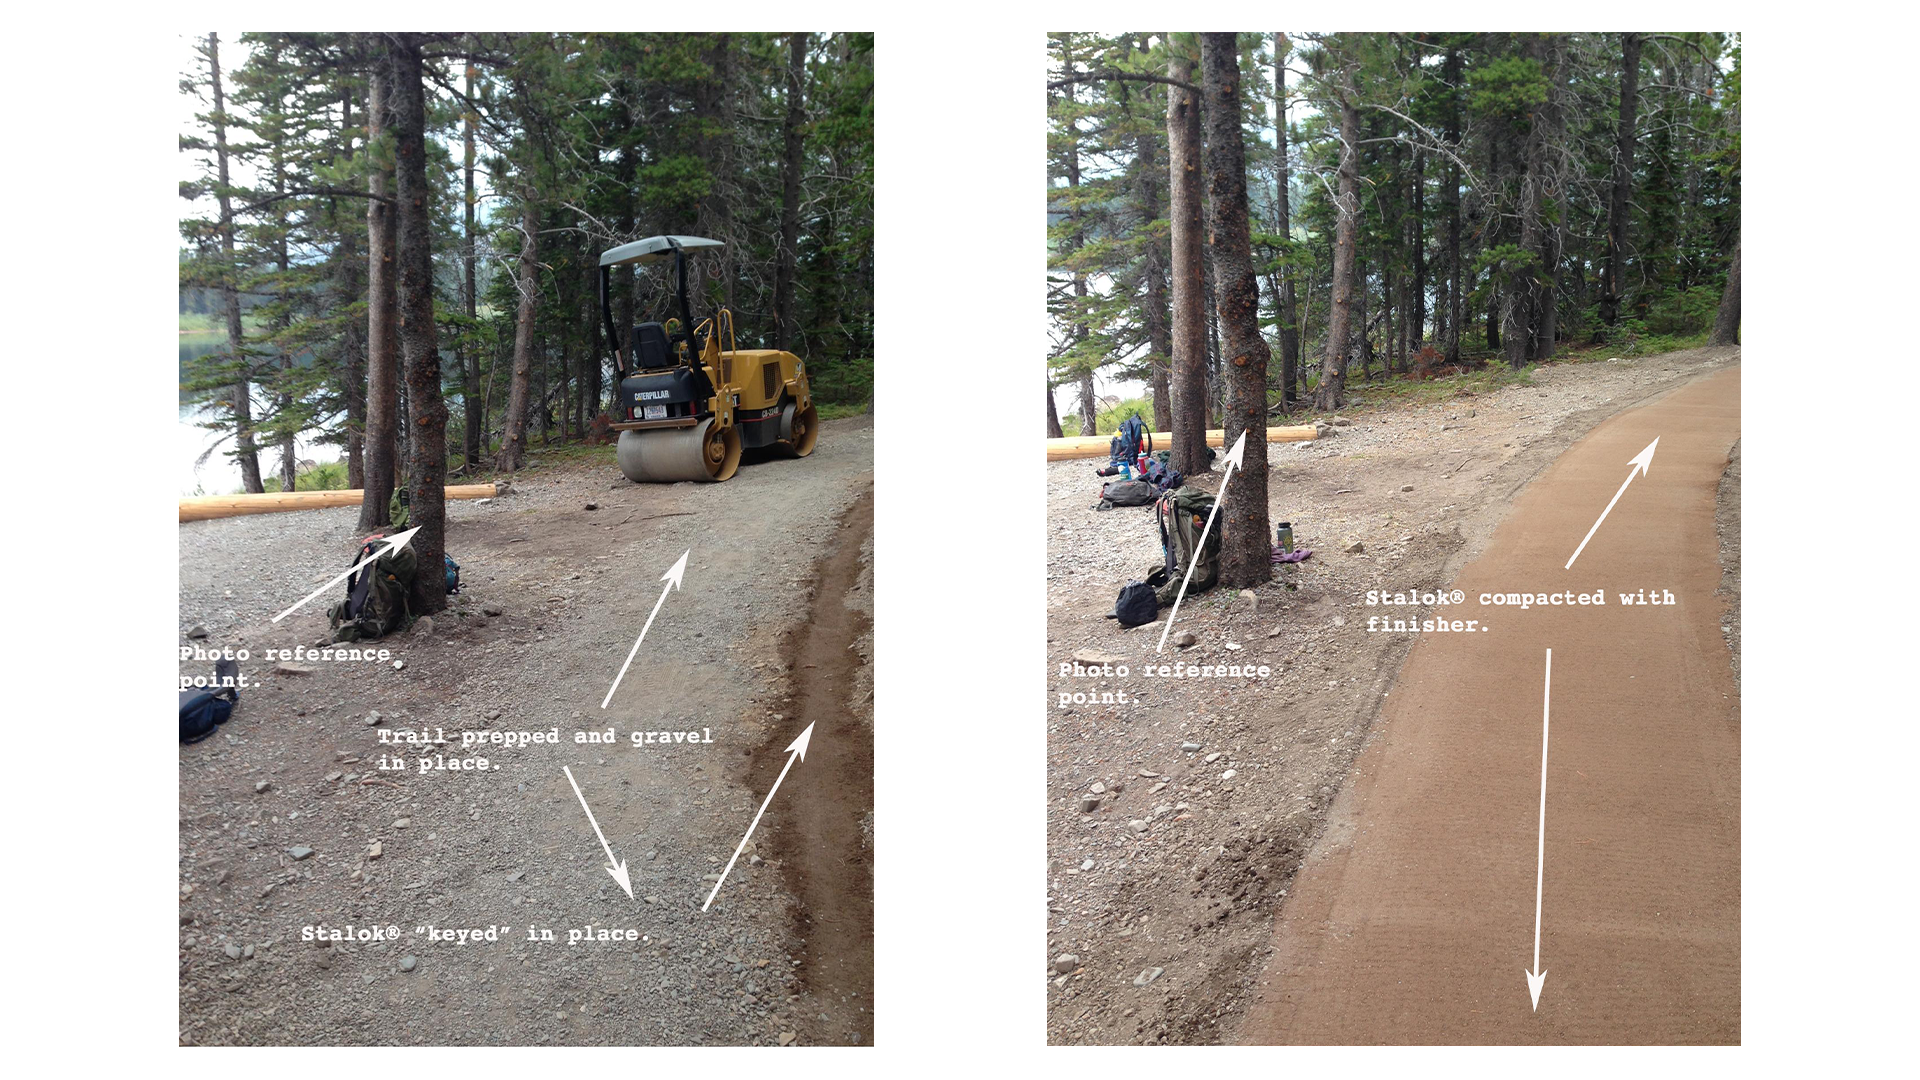 A photo collage showing before and after images of trail work being done on a trail along a forested lakeshore